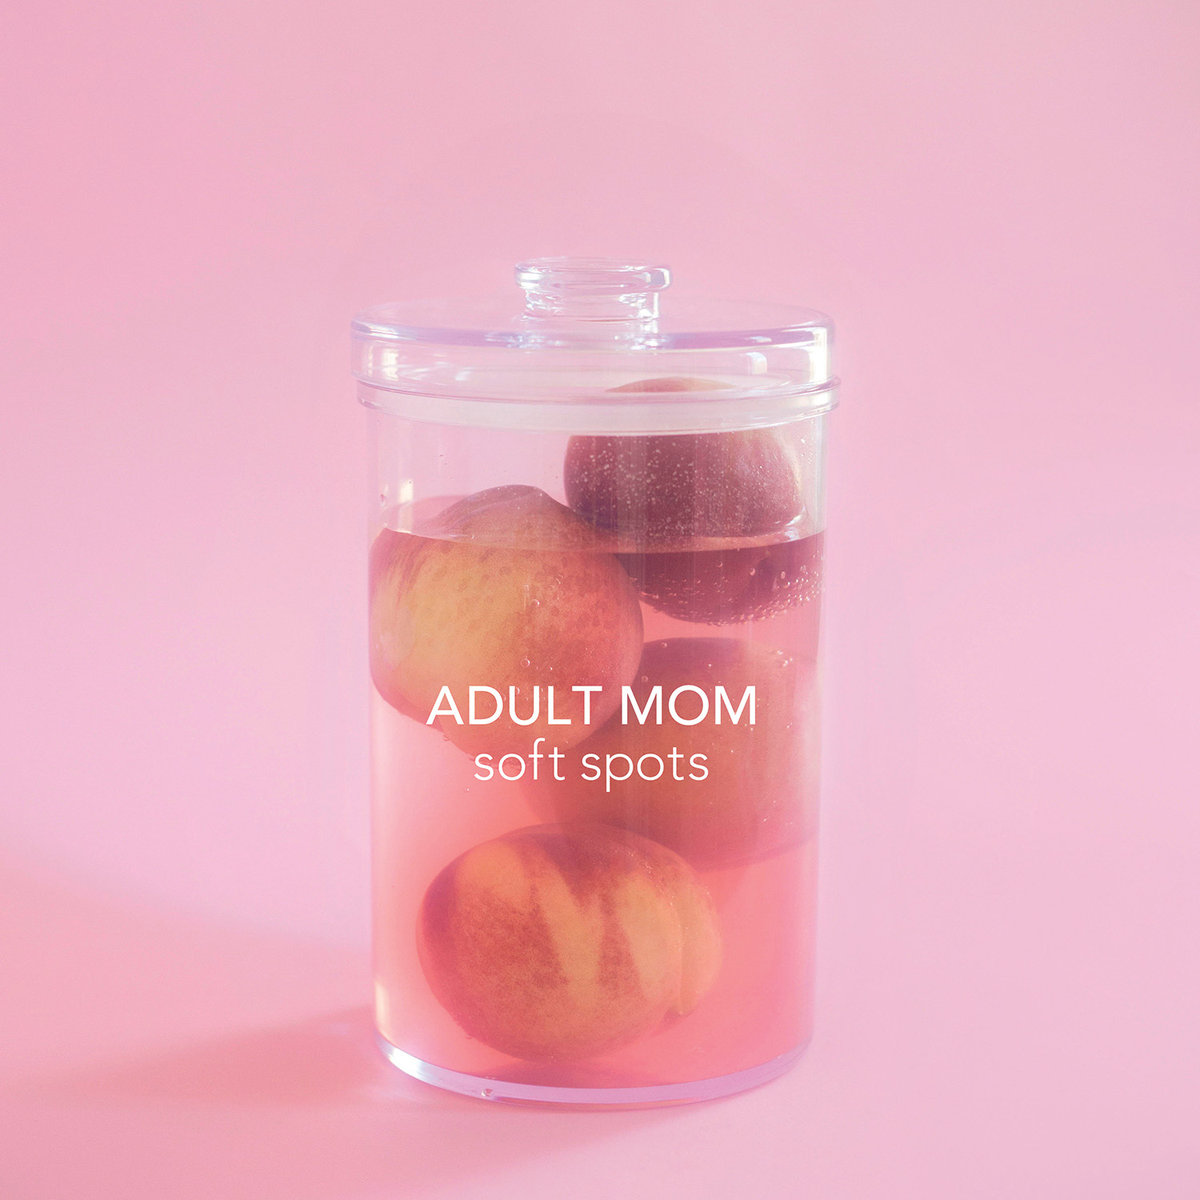 adult mom soft spots album cover peaches in jar